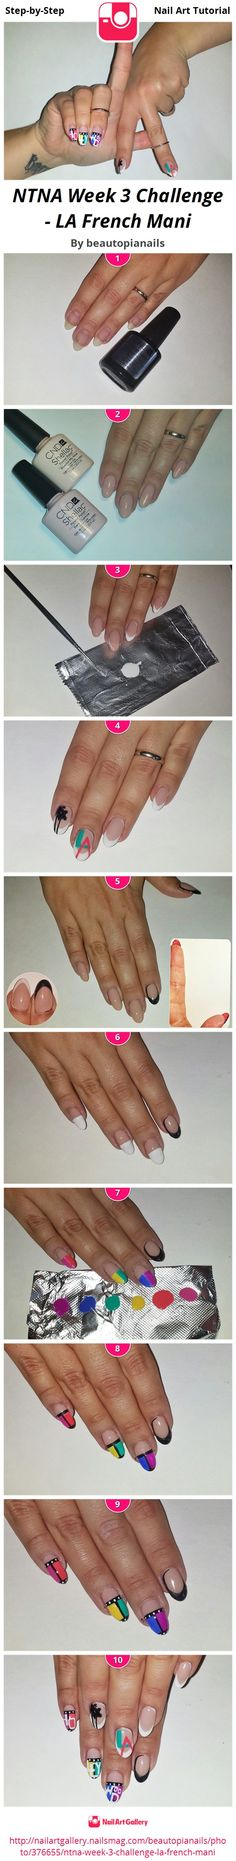 "I came at this challenge from a very literal perspective. Every nail is a French Mani, but several strategic feature nails have a bit more. The ""LA"" hand sign that is so prevalent in visual social media platforms right now wormed it's way into my brain, and much like the ""Martini Mani"" trend from a few years ago,  I thought it would be so cool to have a modern french with feature nails that were visible when making this hand sign. I thought it would look really attractive in photos. As an ..."